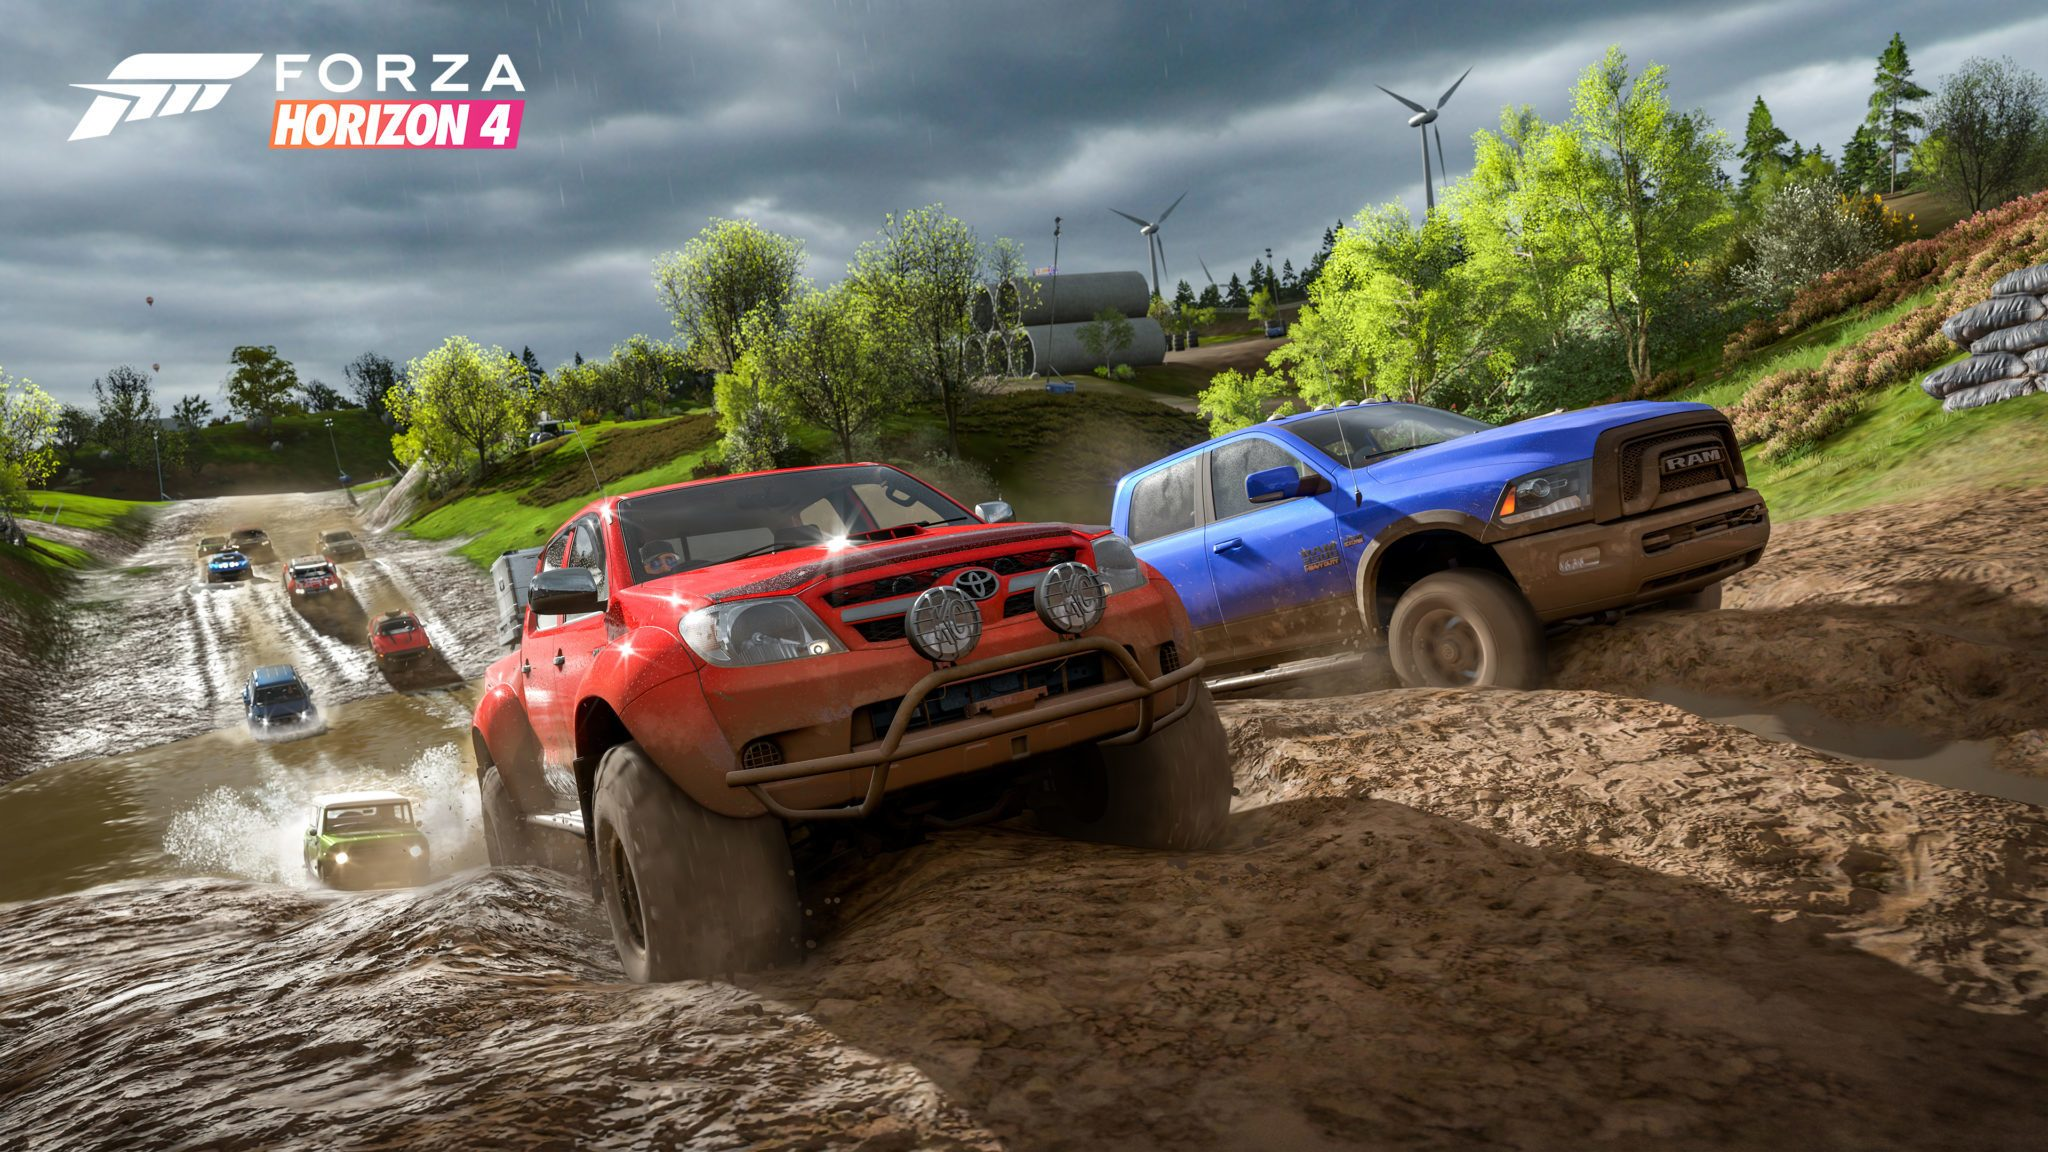 Fh4 Car List trolls can't ruin your fun in forza horizon 4's online modes